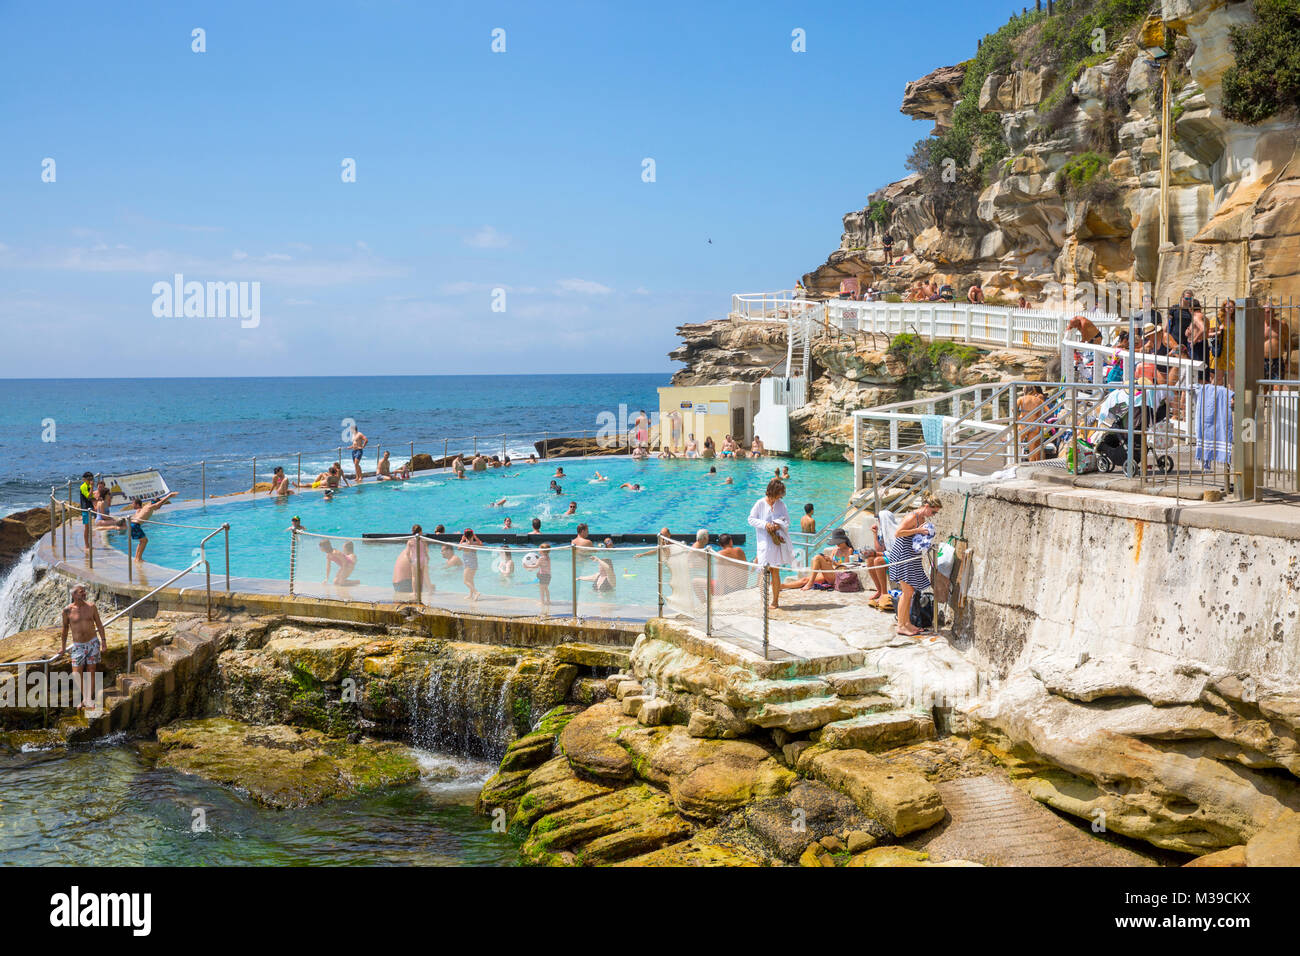 Swimming Pool At Bronte Stock Photos Swimming Pool At Bronte Stock Images Alamy